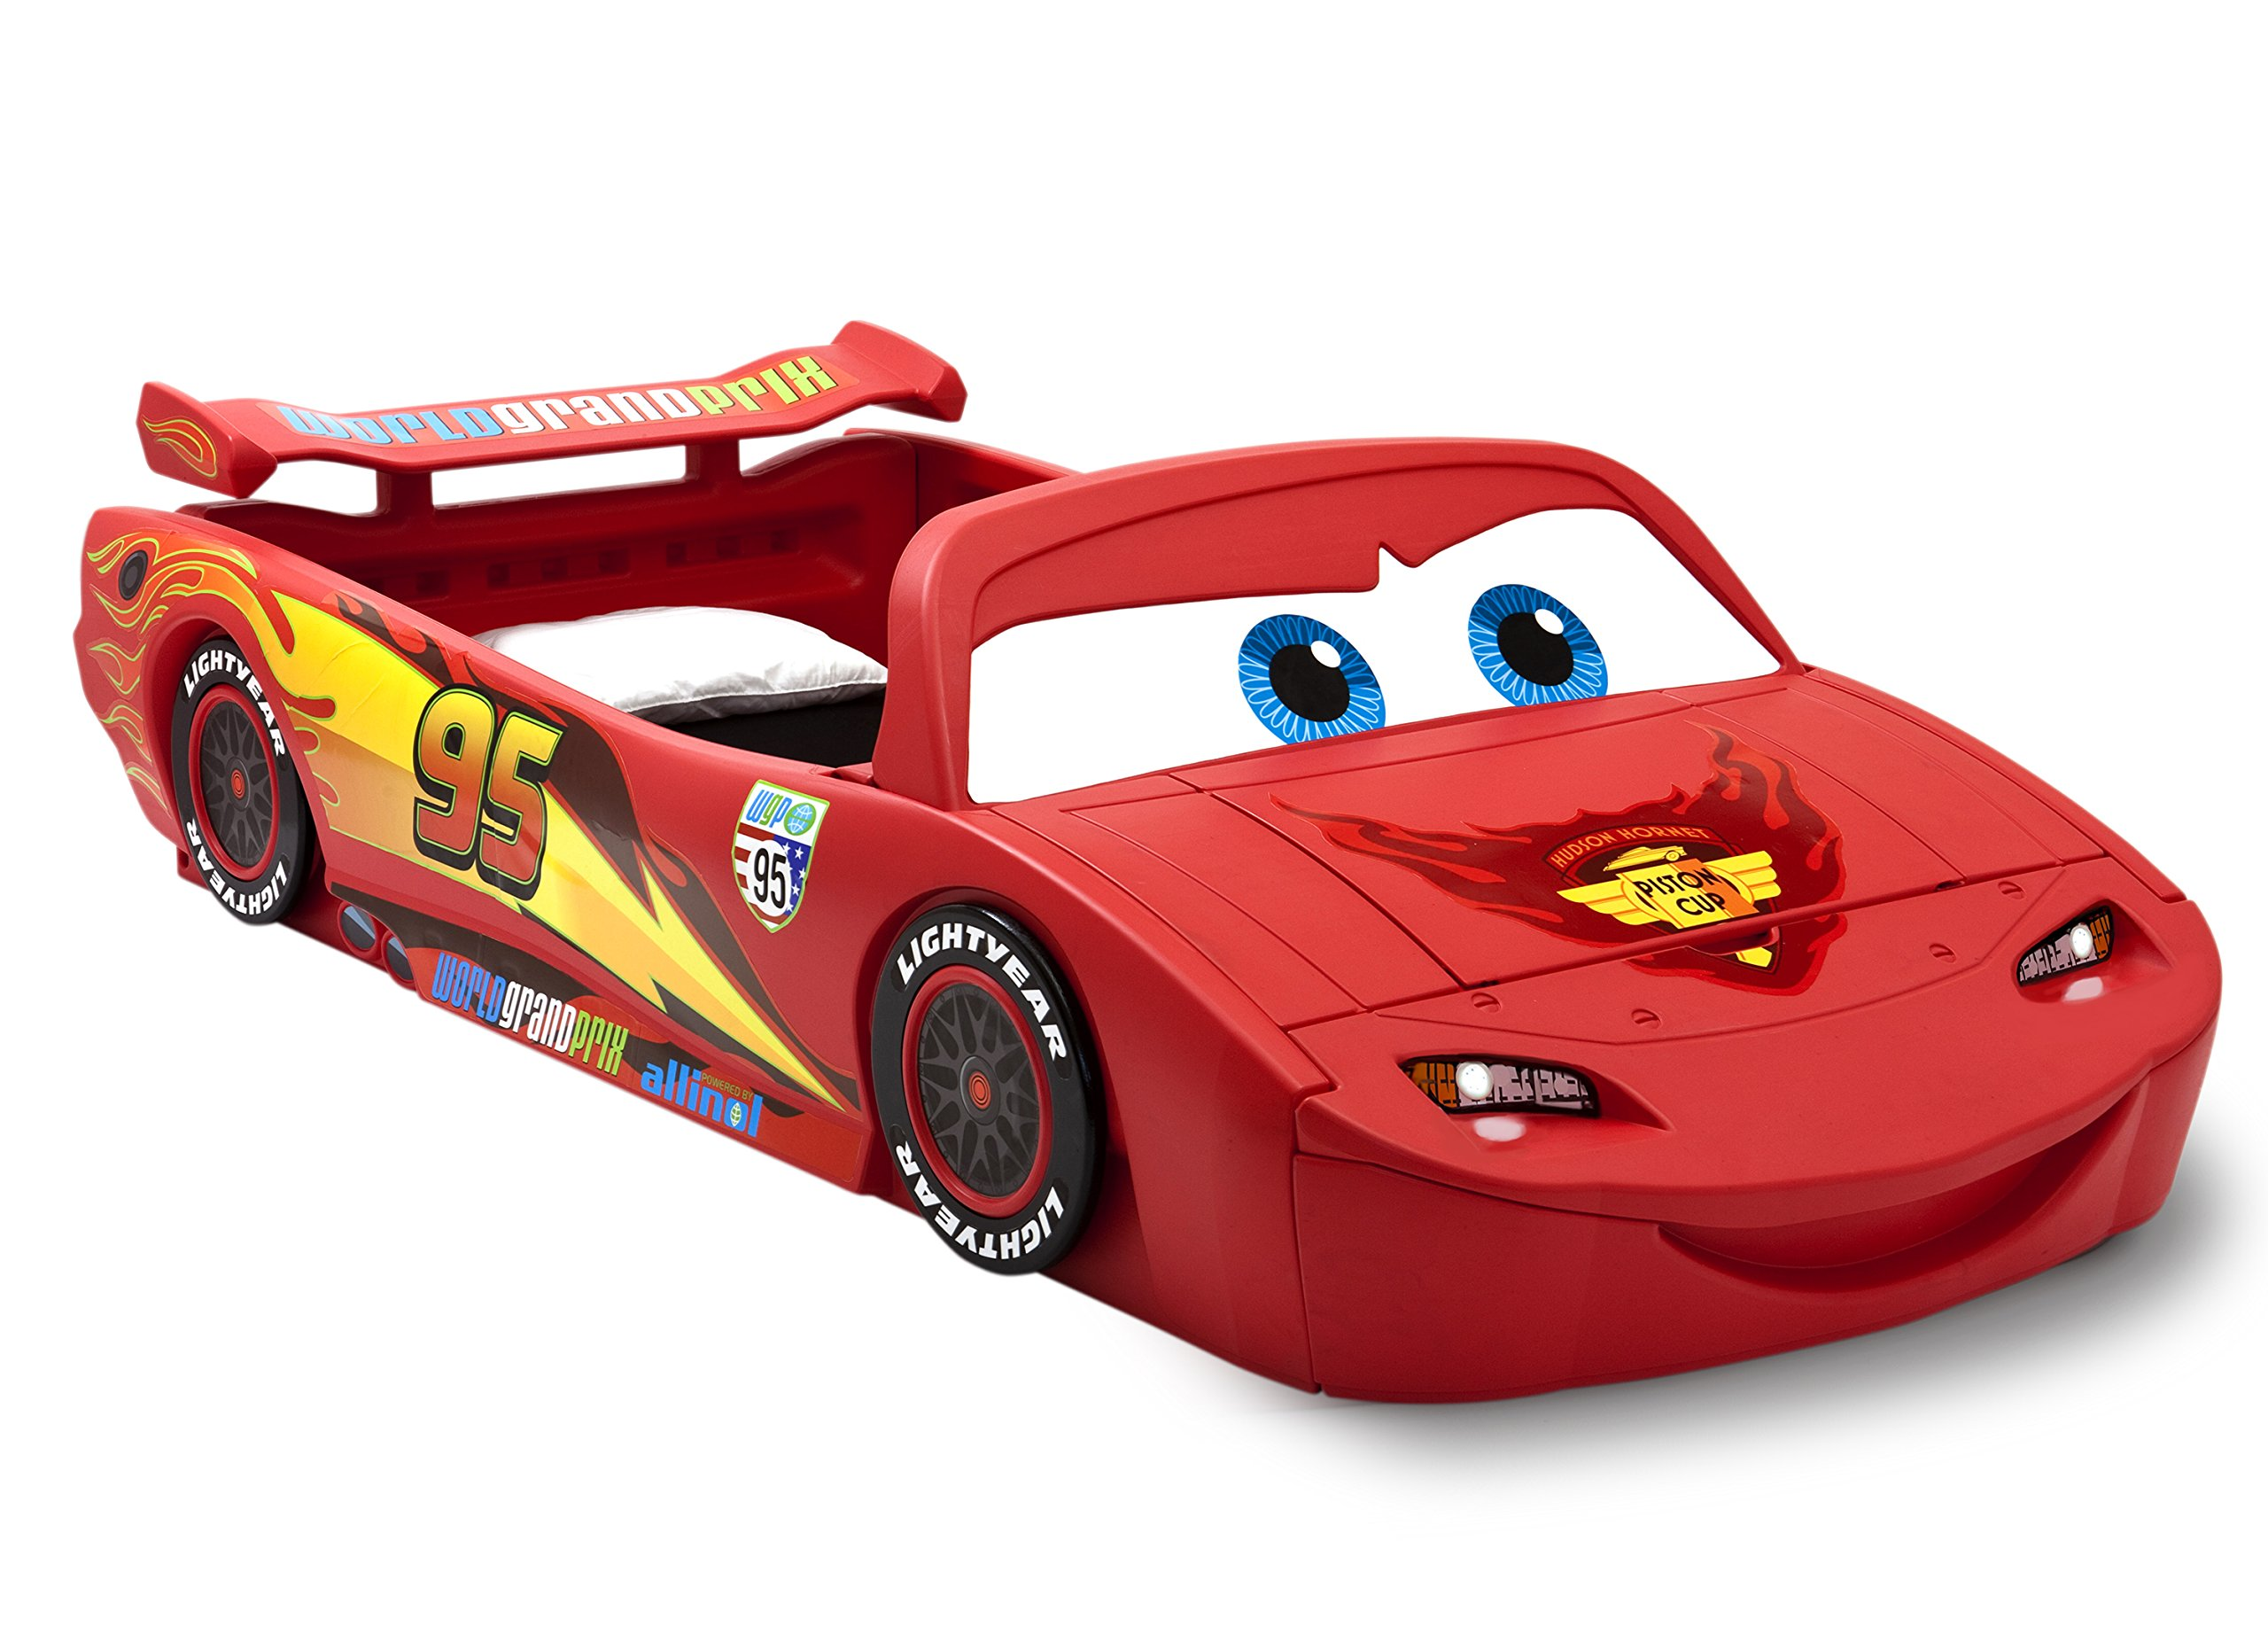 Delta Children Cars Lightning Mcqueen Toddler-To-Twin Bed with Lights and Toy Box, Disney/Pixar Cars by Delta Children